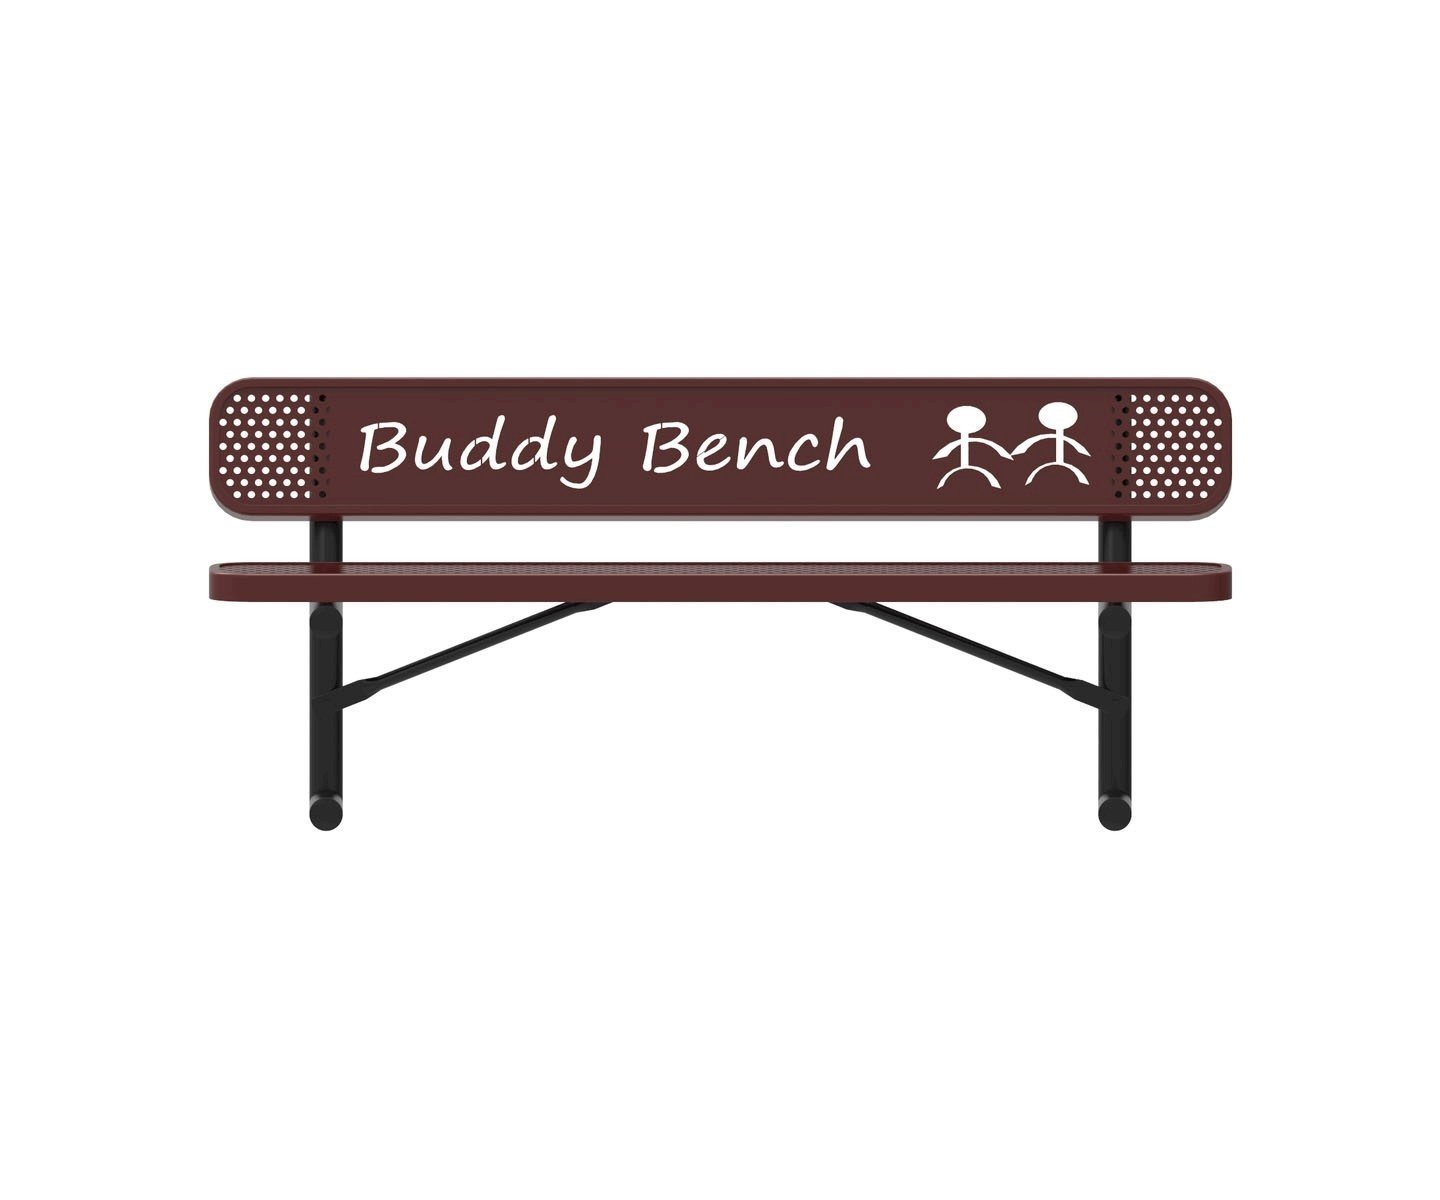 RHINO Series Rectangular Thermoplastic Buddy Bench – 4 Foot, 6 Foot on heavy duty bench, 9 ft bench, square bench, portable bench, electronic bench, 6 foot bench, work bench, 8 ft storage bench, kitchen bench, 5 foot bench, glass bench, 36 inch bench, outdoor wooden memorial bench, aluminum bench,